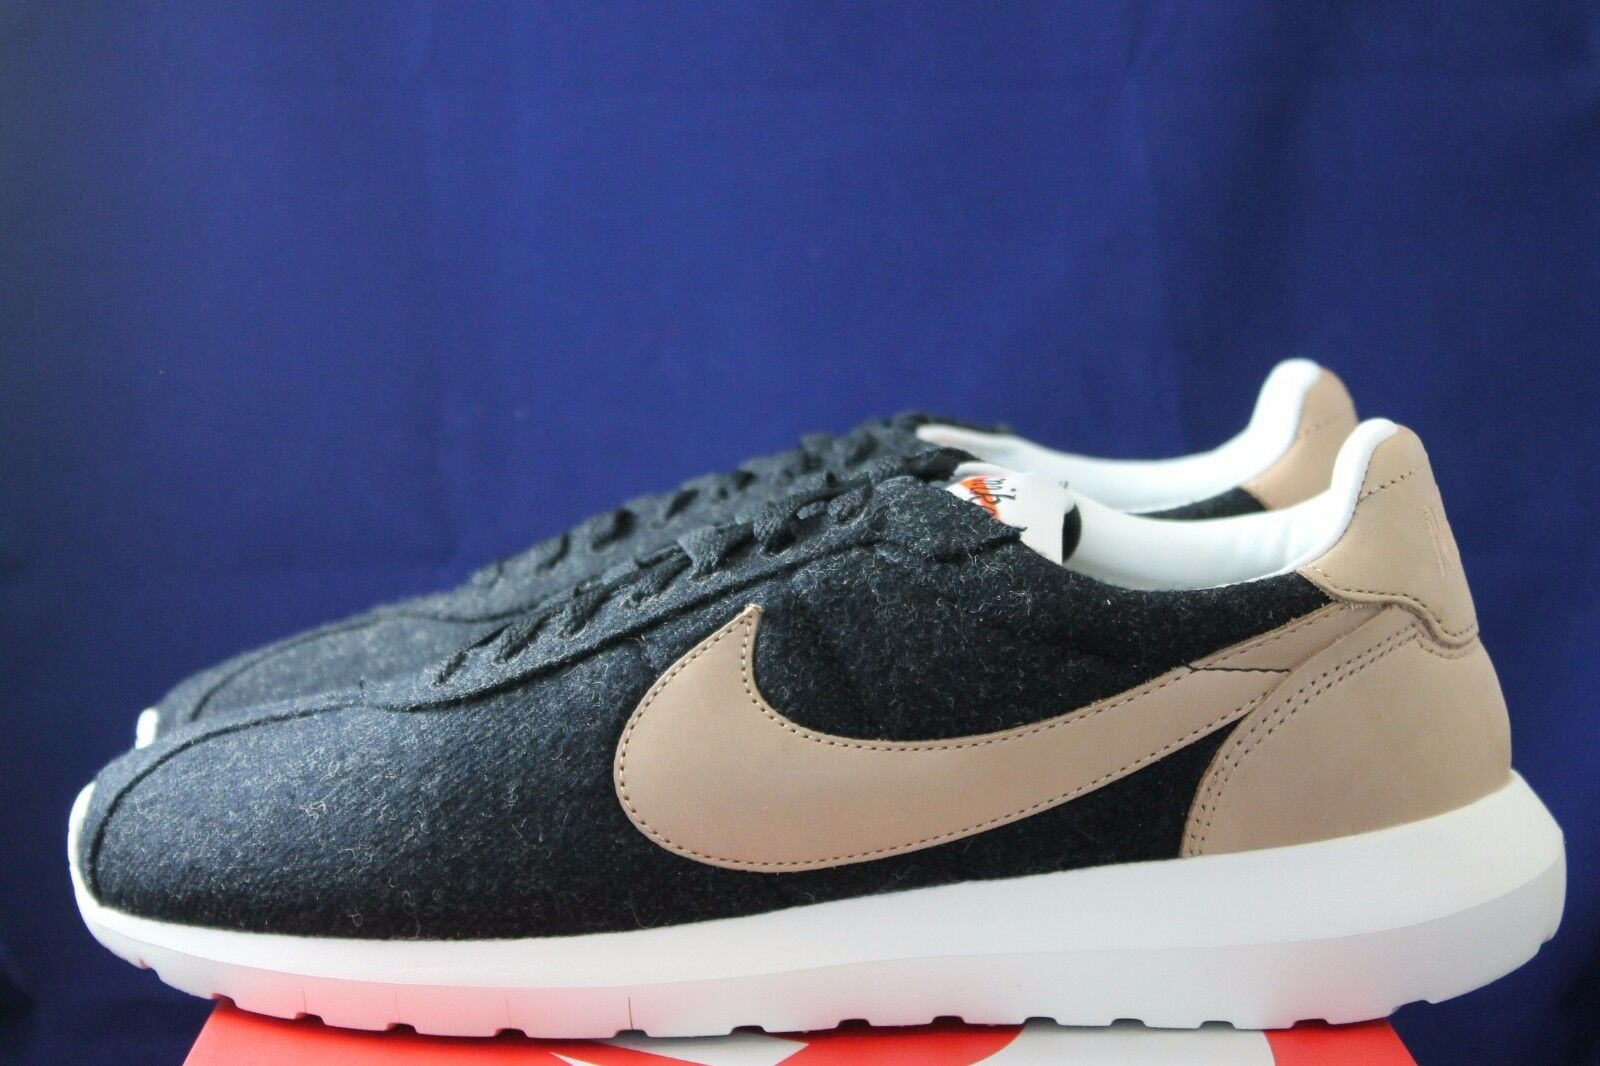 NIKE ROSHE LD - 1000 WOOL BLACK VACHETTA TAN LEATHER 844266 001 Price reduction